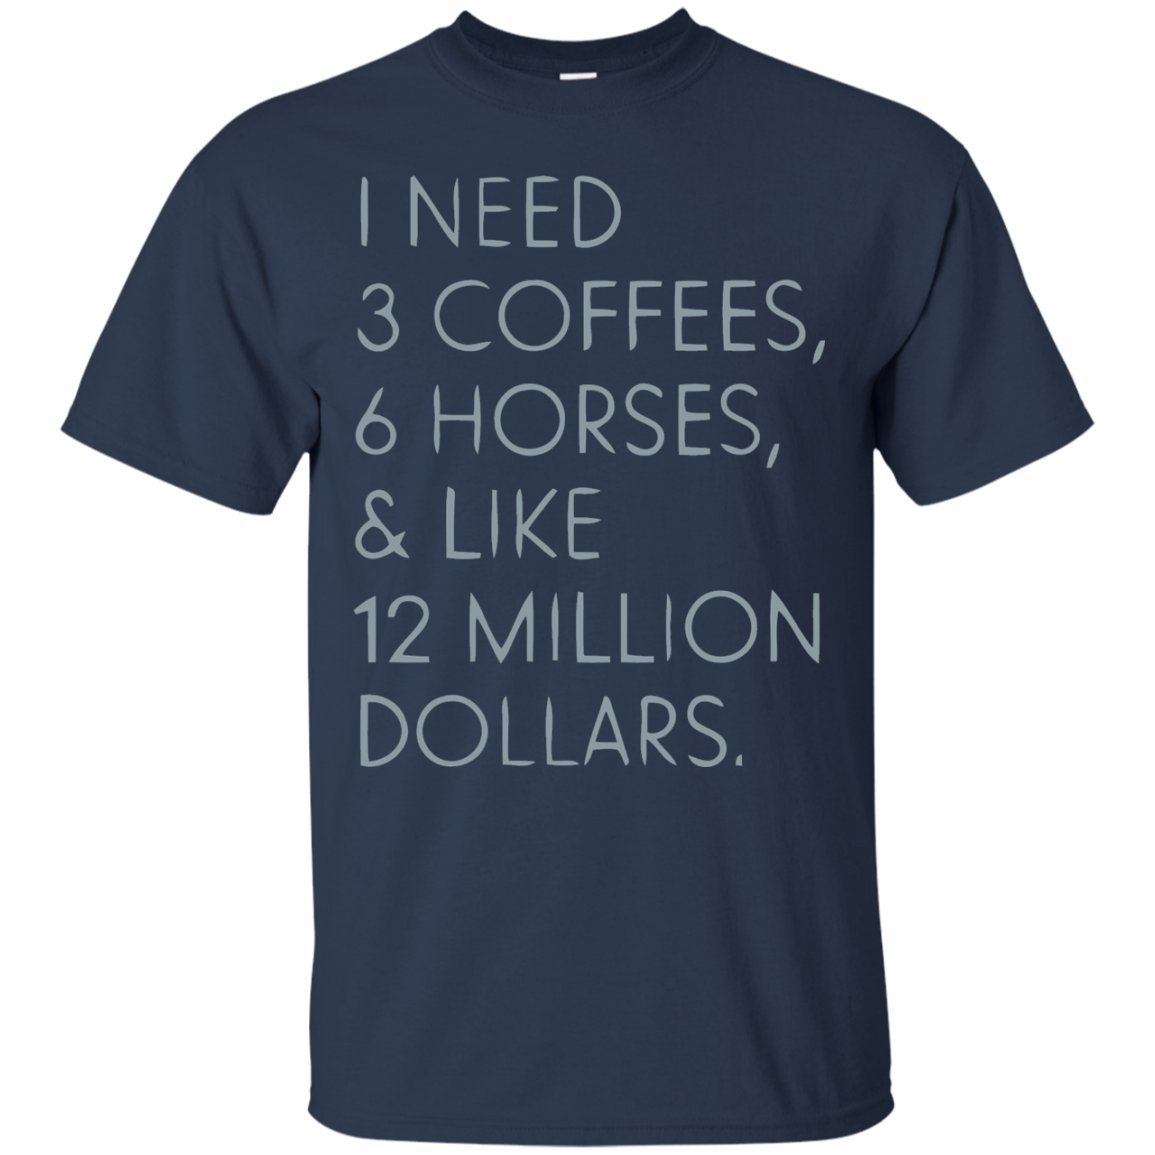 1f2380f5 CoffeeTee Coffee Horse Dollar Money Rich Quote Gift Joke Fun - Men's T-S  Best Gifts T-Shirt